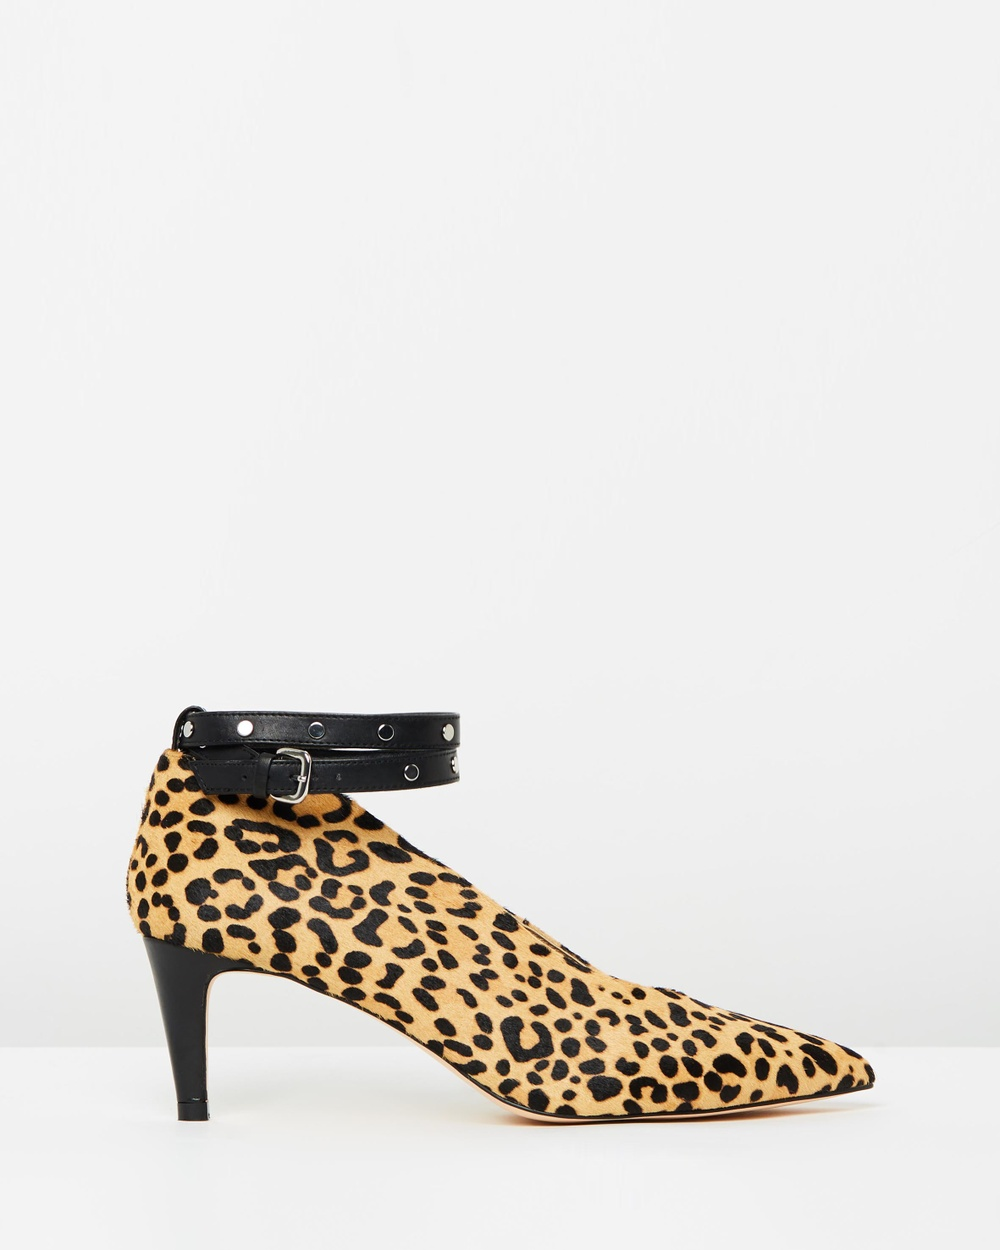 Atmos & Here ICONIC EXCLUSIVE Lucy Leather Heels All Pumps Leopard Pony Hair ICONIC EXCLUSIVE Lucy Leather Heels